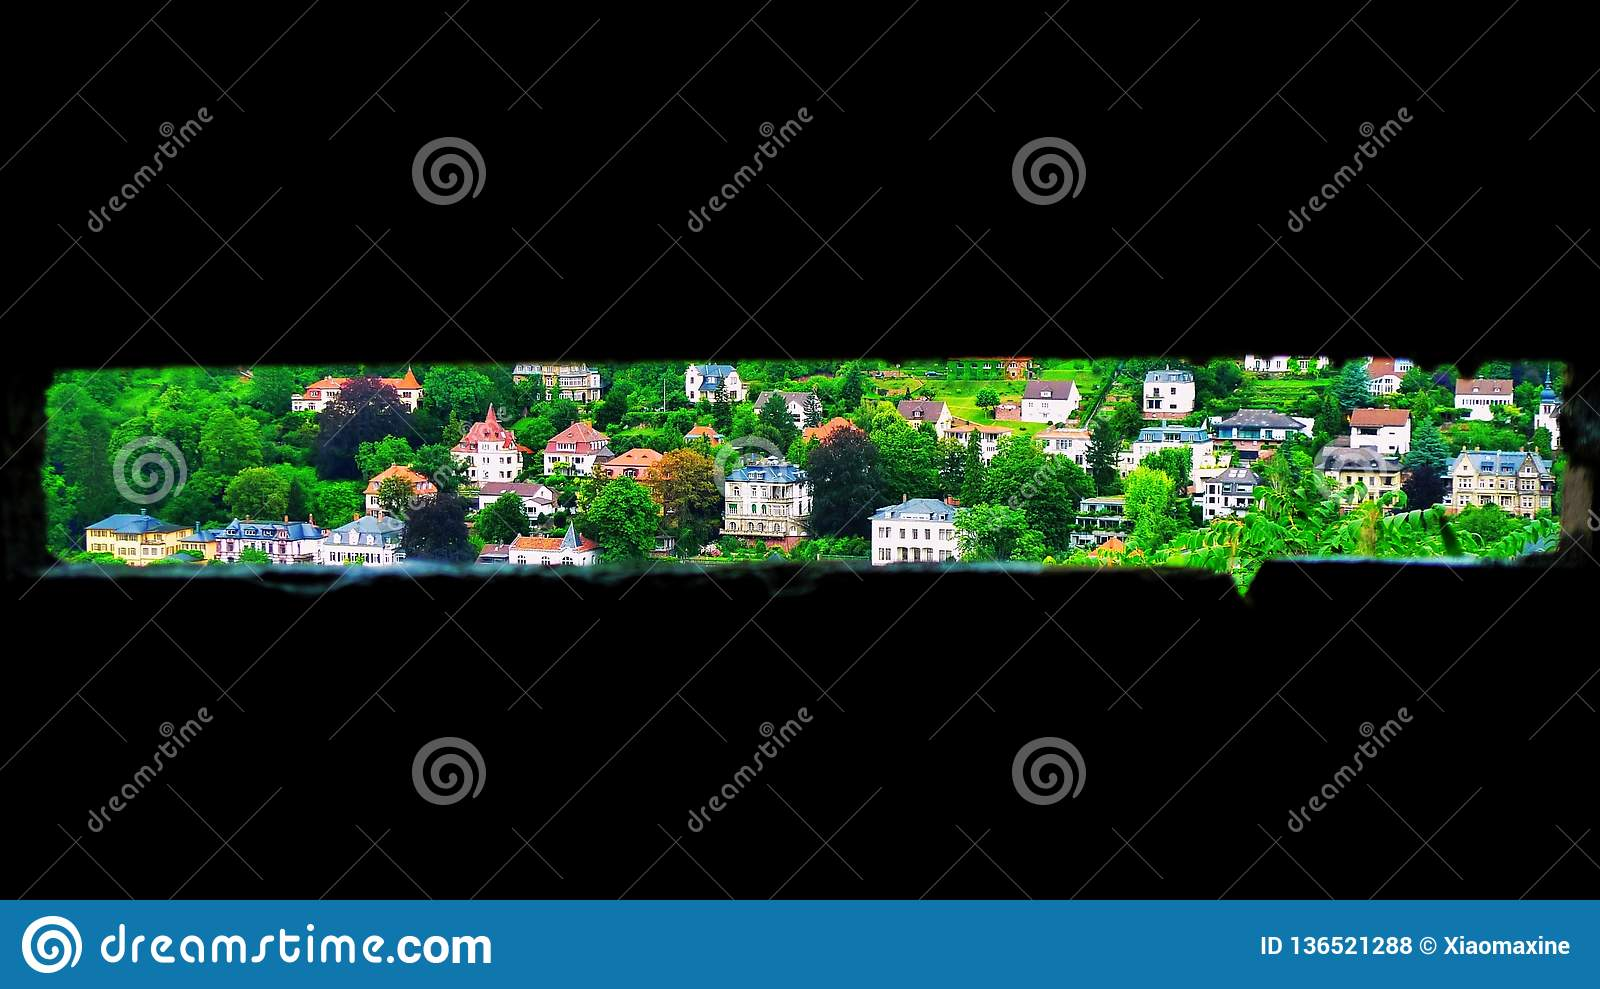 Recycling Heidelberg The Other Shore Stock Photo Image Of Green Germany 136521288